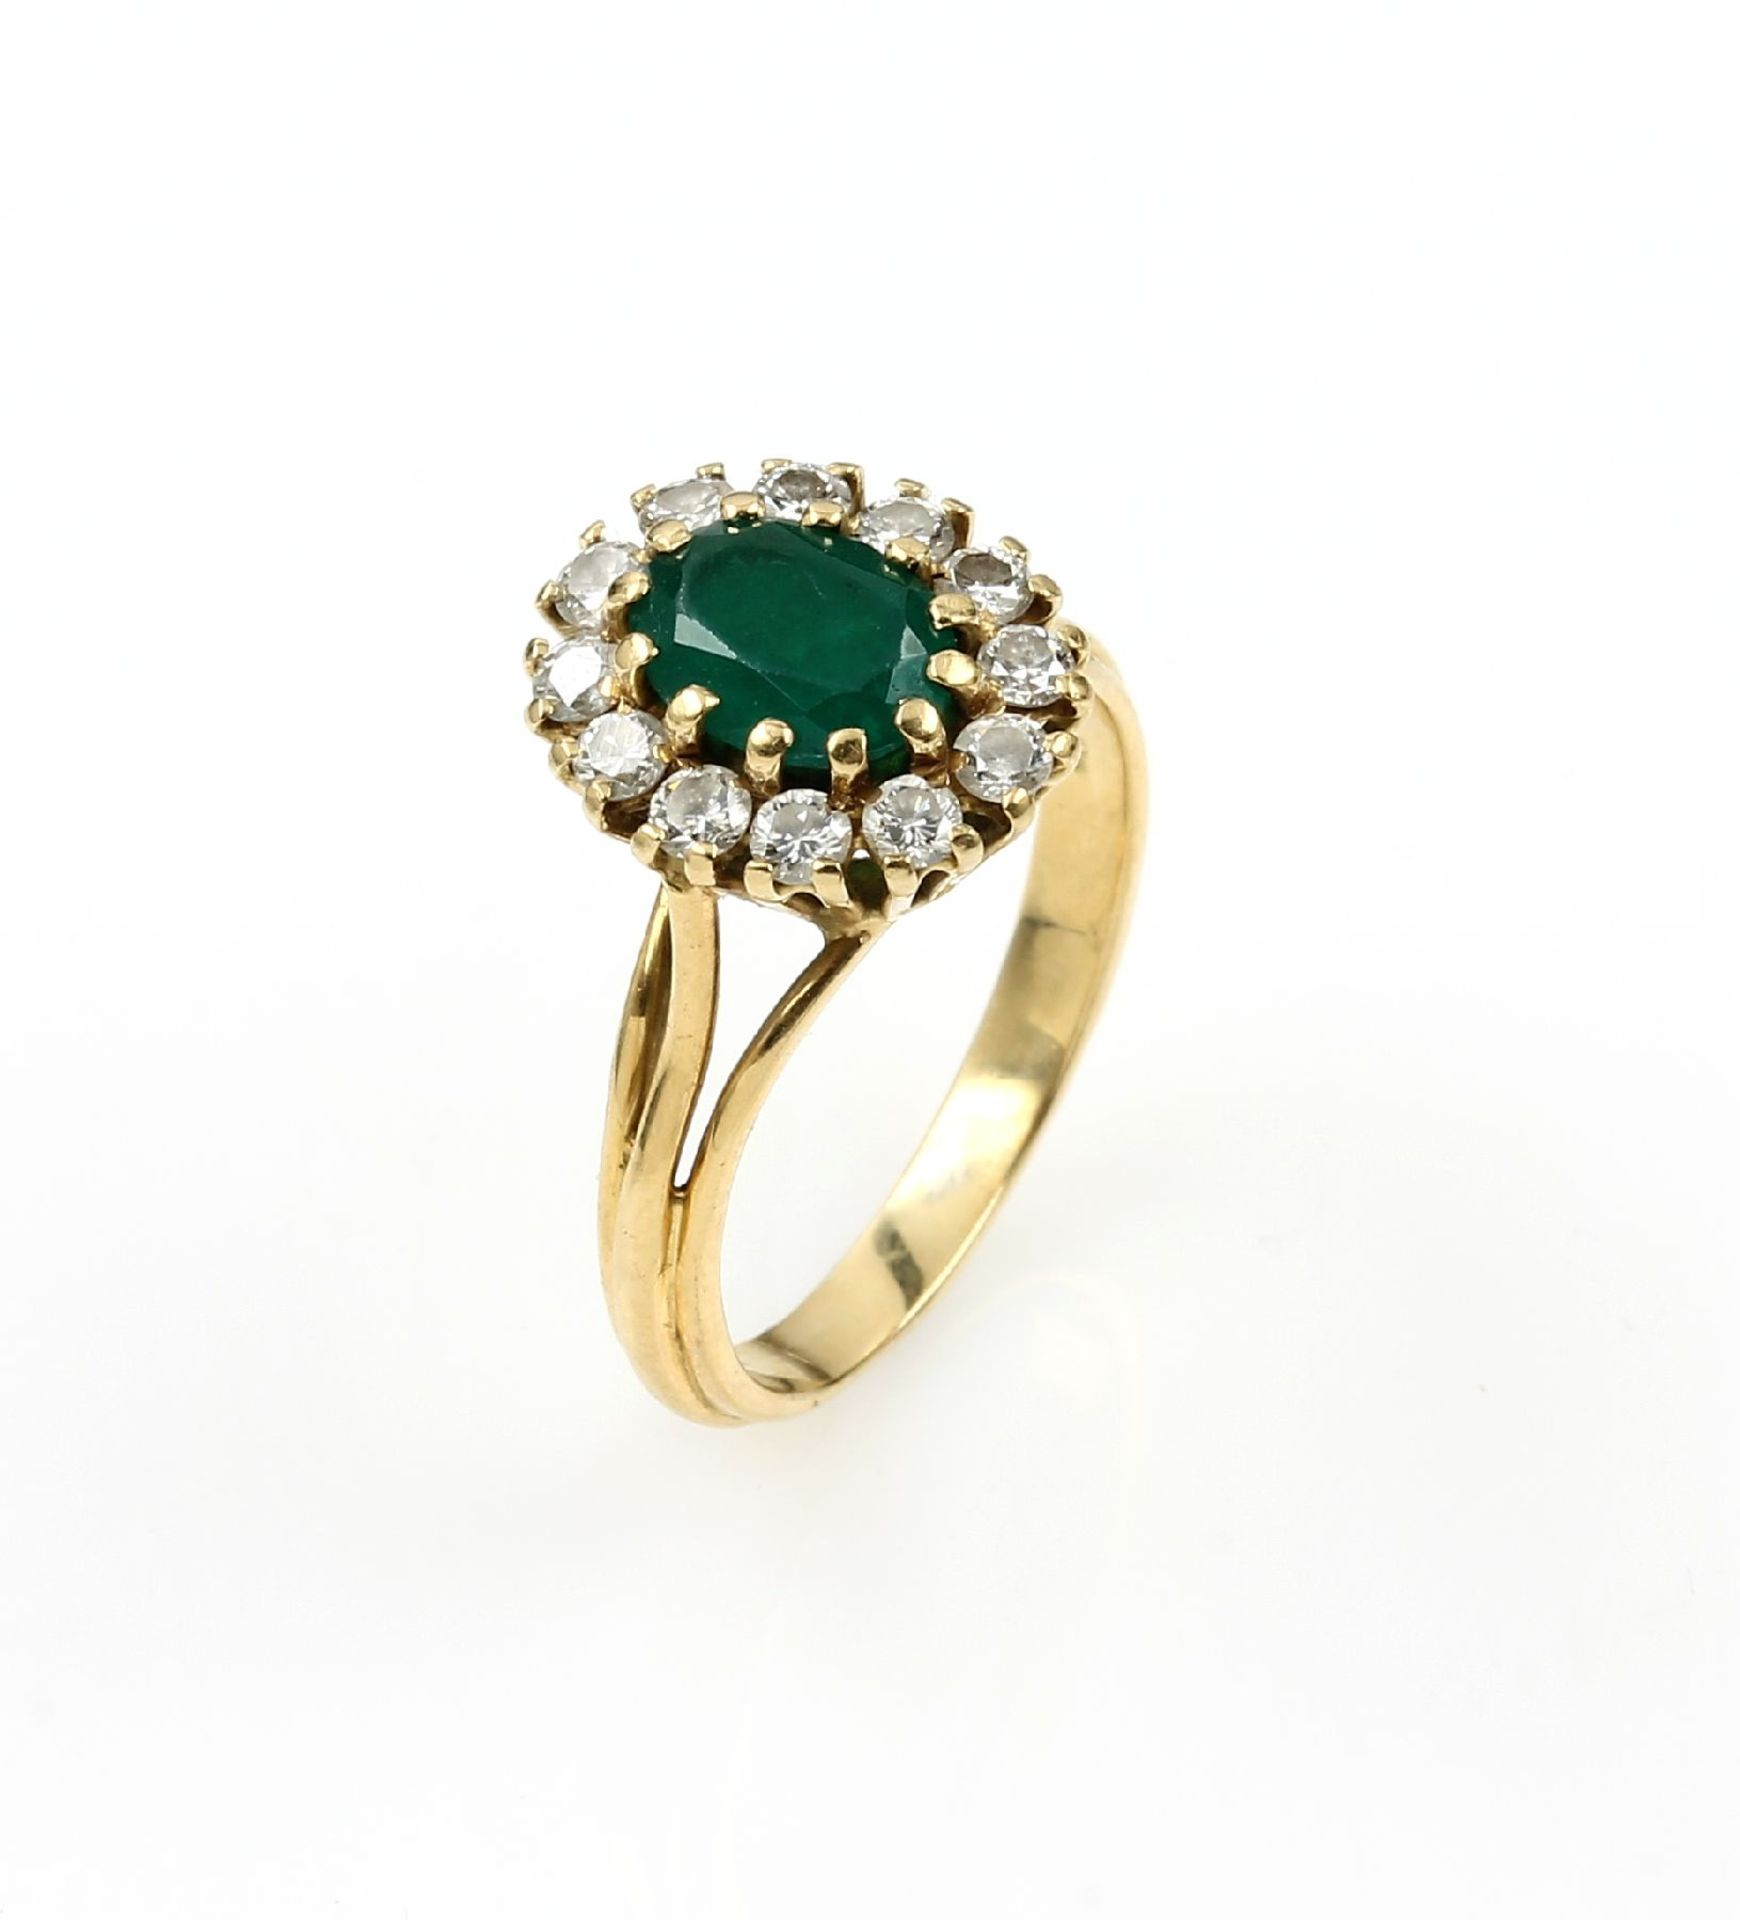 Los 61532 - 18 kt gold blossom ring with emerald and brilliants , YG 750/000, centered oval bevelled emerald